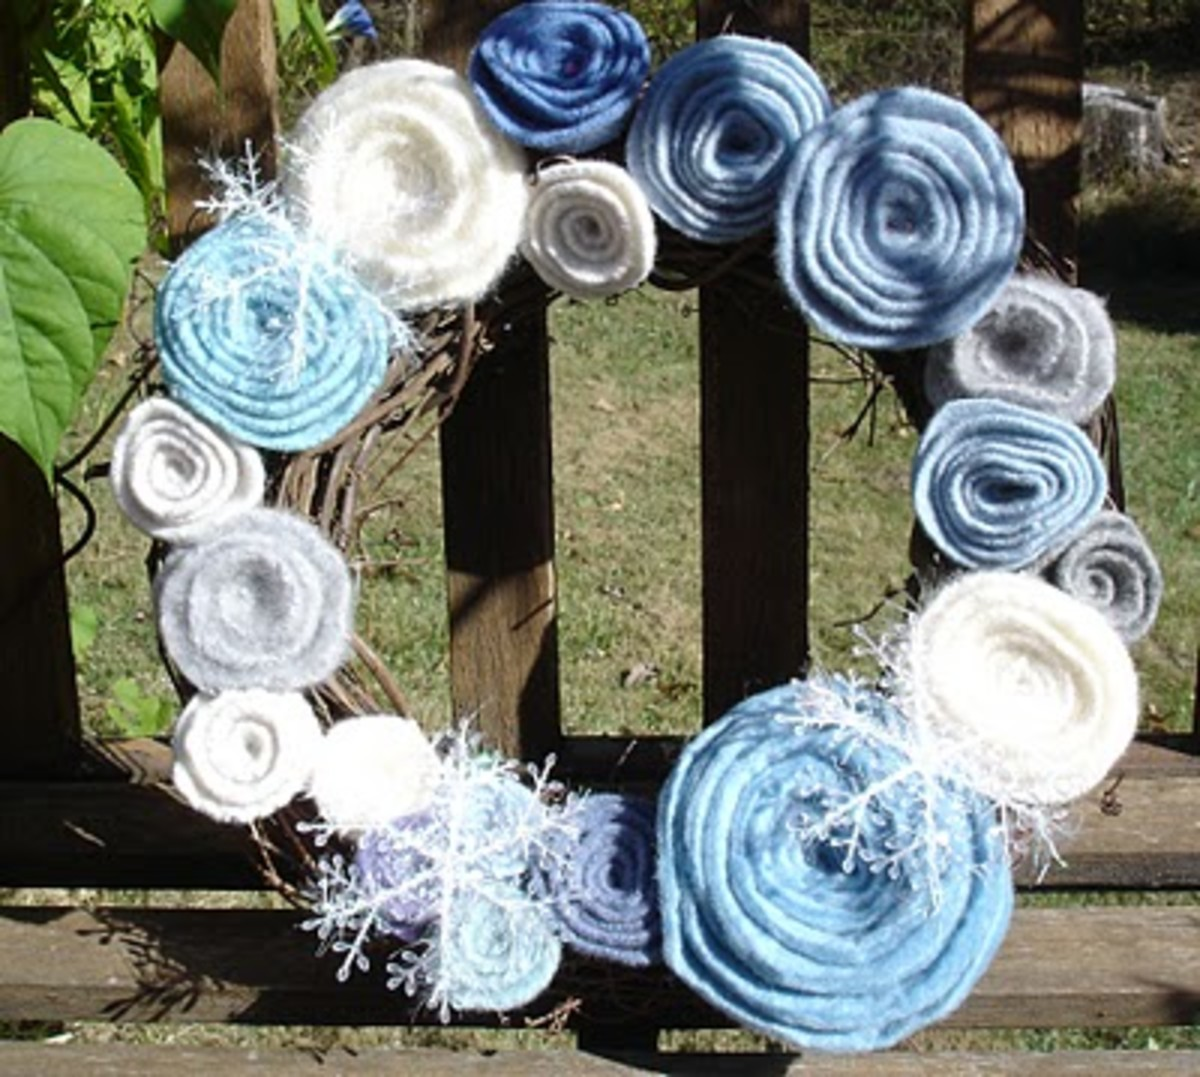 felted rose wreath from old sweater